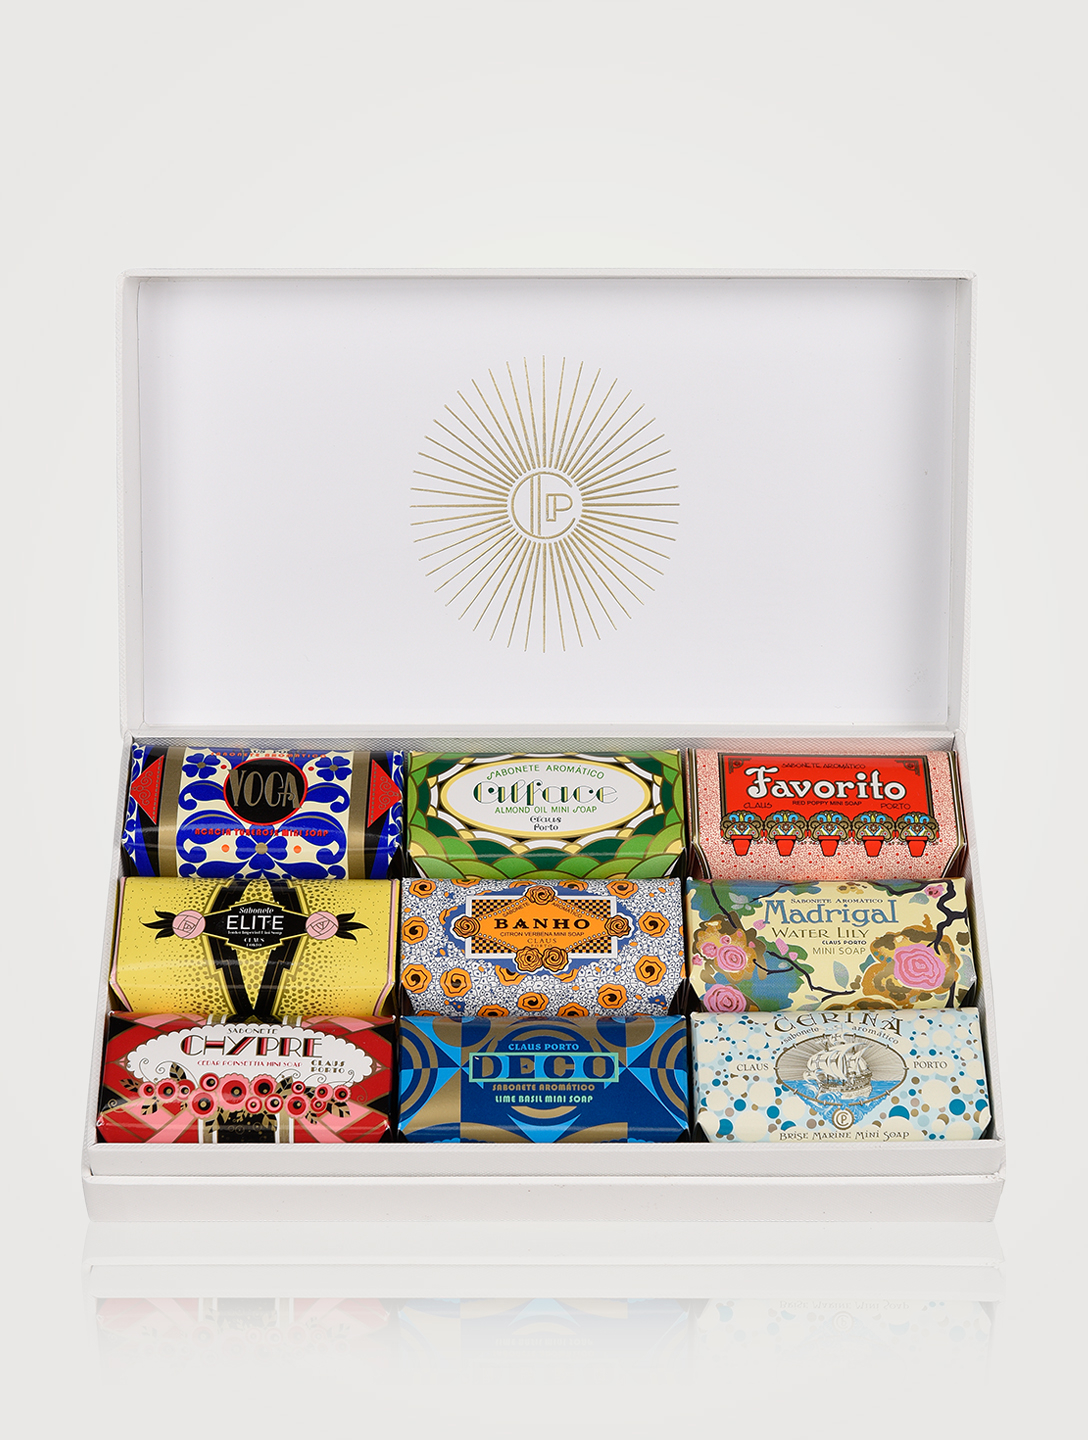 CLAUS PORTO Deco Nine Mini Soaps Gift Box Beauty